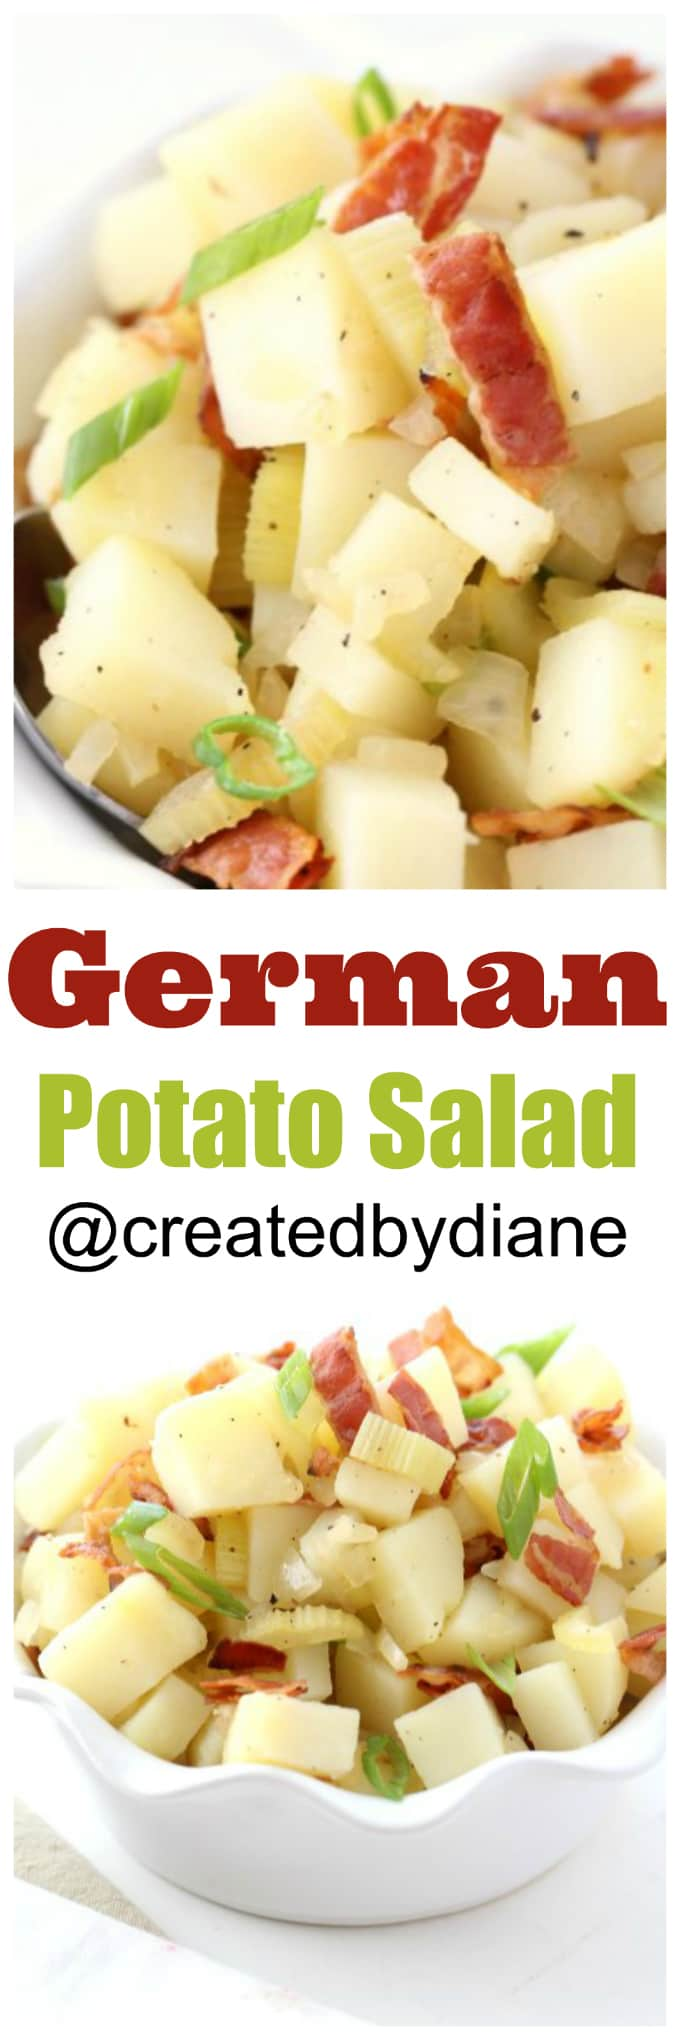 german-potato-salad-recipe-createdbydiane